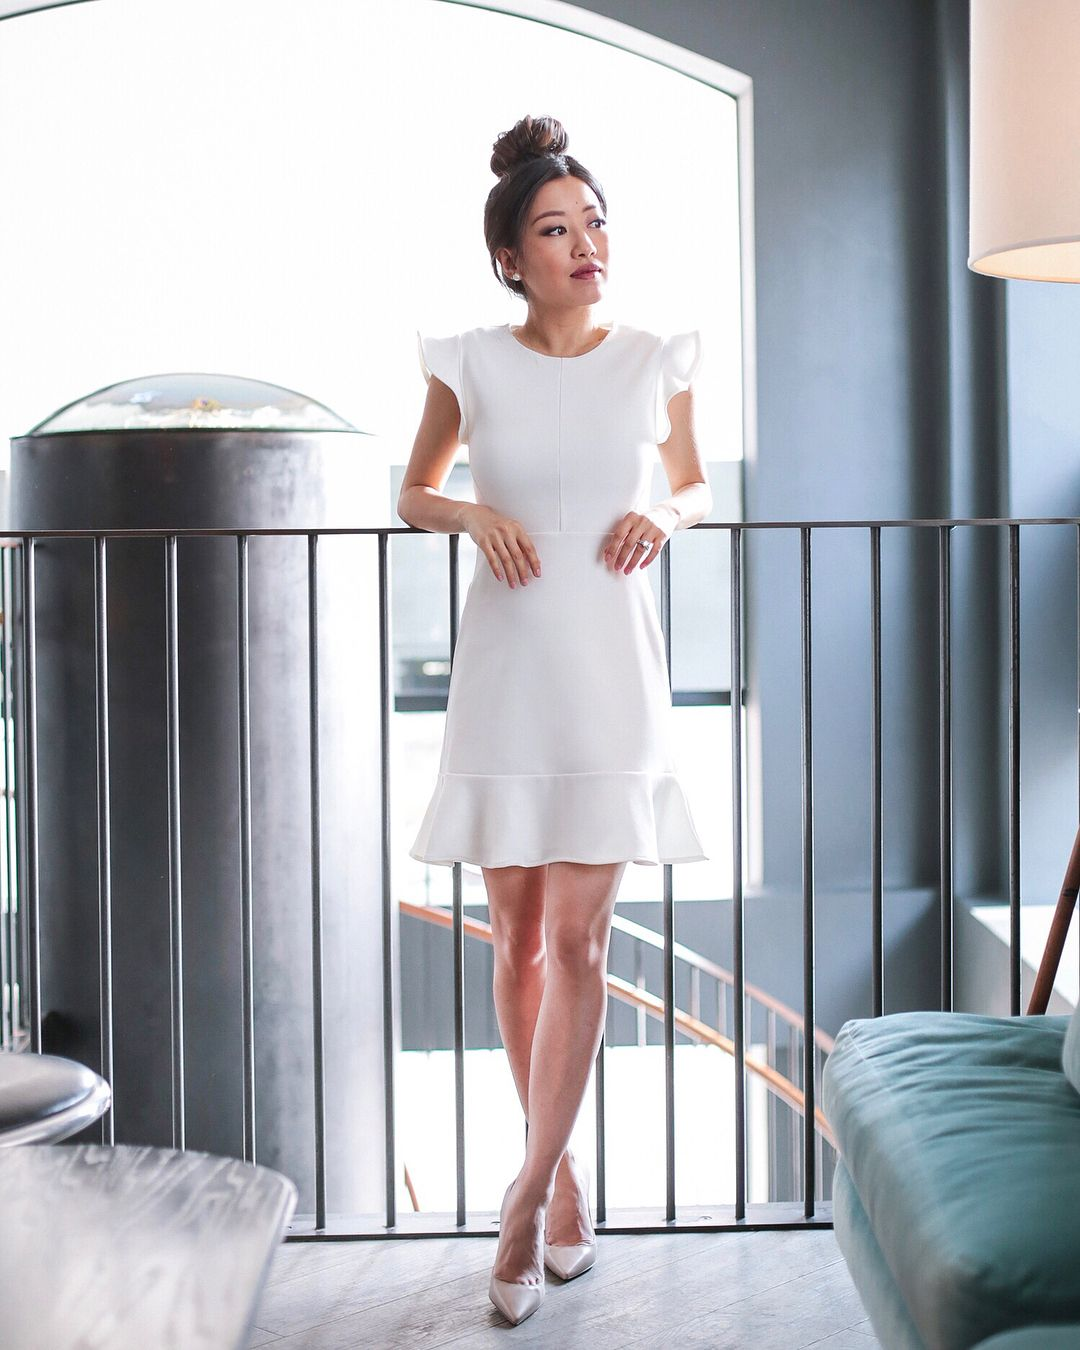 K Likes  Comments Jean Extra Petite Blog Jeanwang On